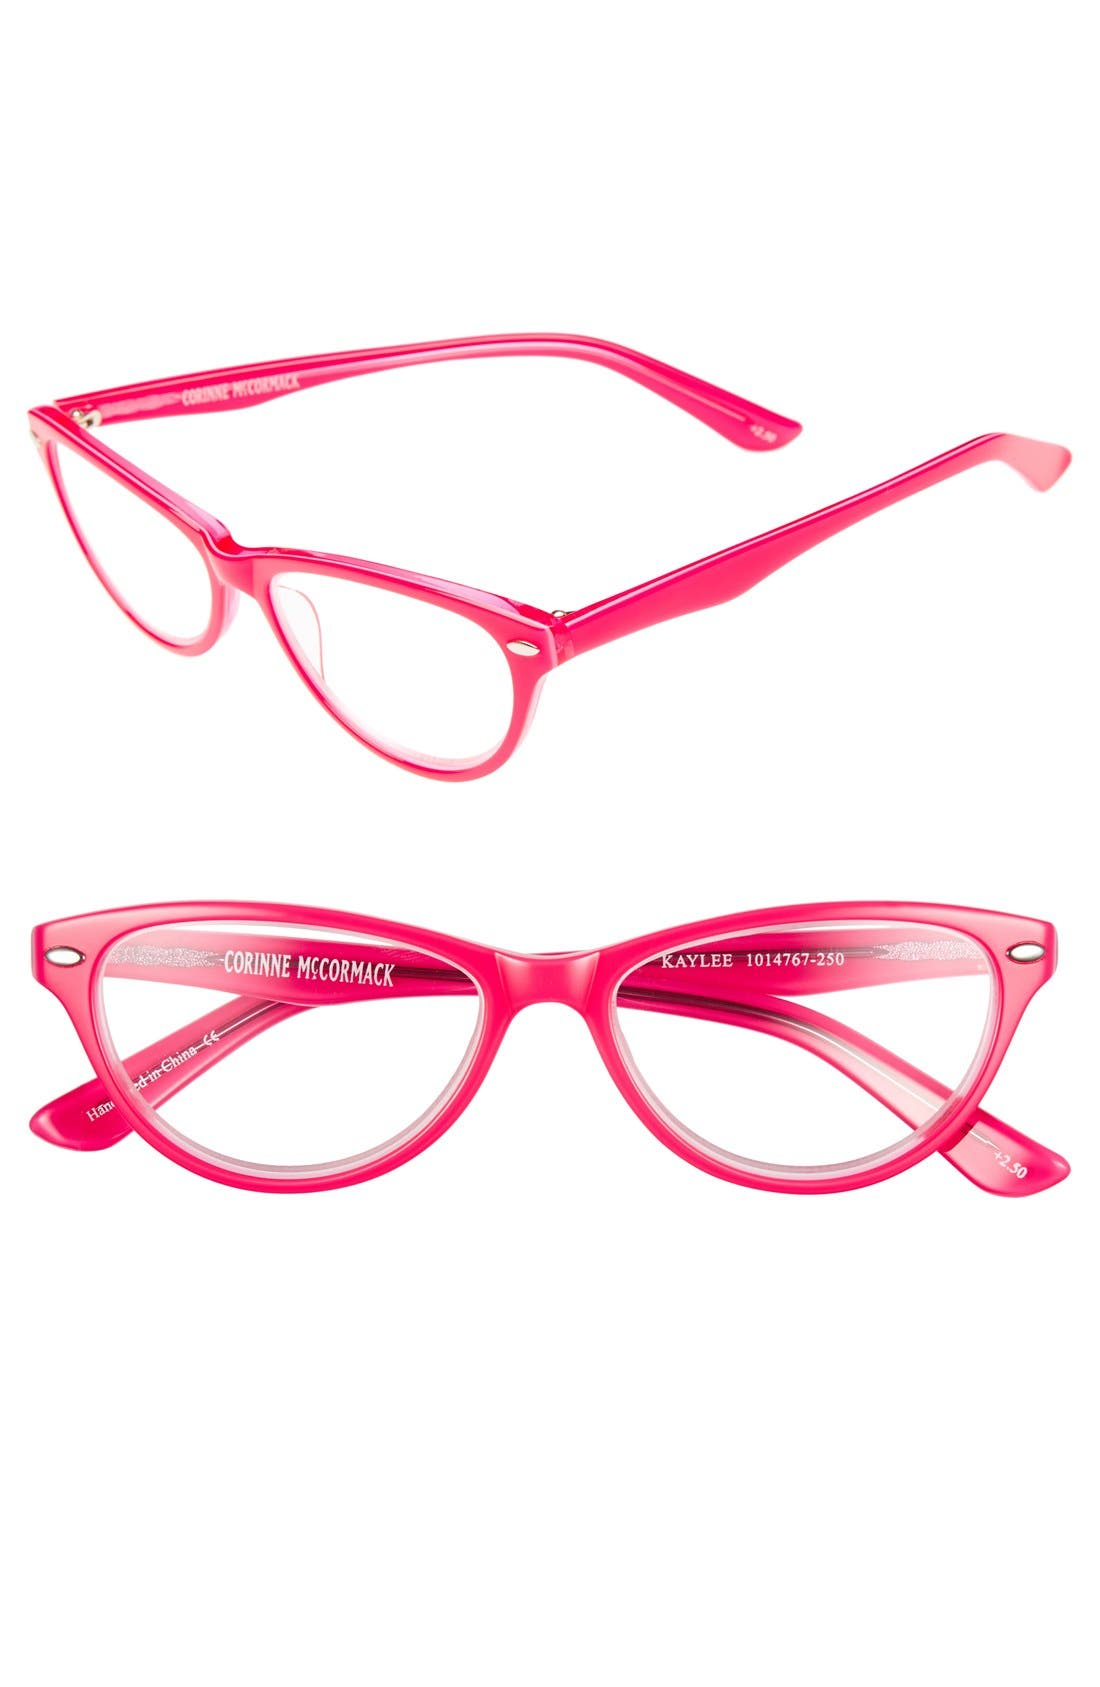 'Kaylee' Reading Glasses,                             Main thumbnail 1, color,                             650